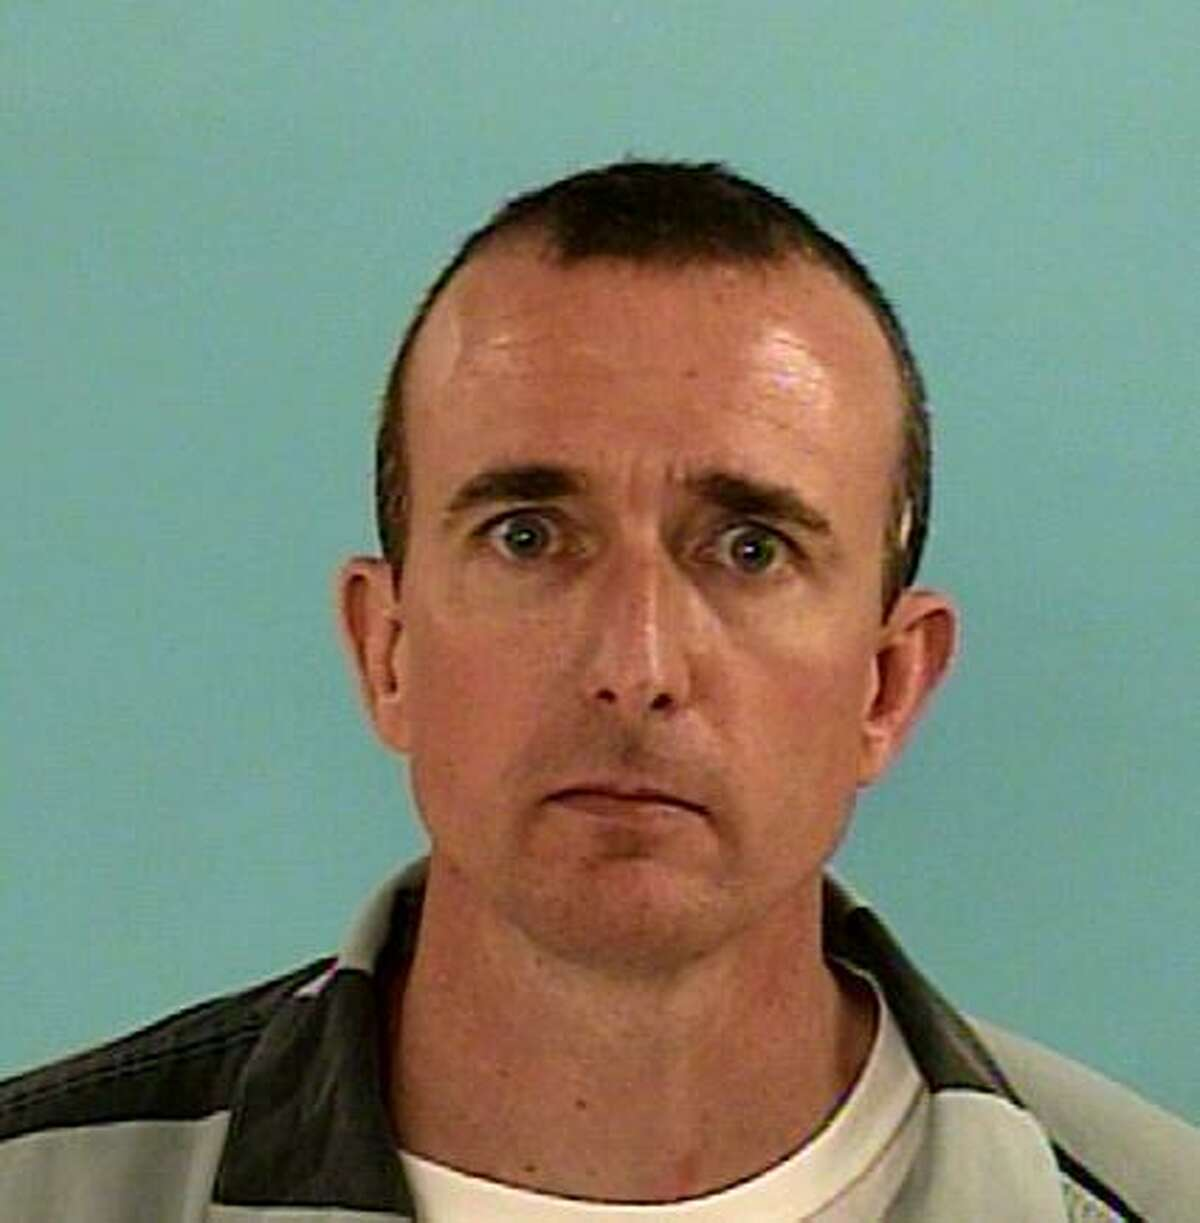 Christopher Lee Sutton, 37, was indicted Tuesday on five counts of improper relationship between an educator and a high school student in the Conroe school district. Sutton was a sergeant in the school district police department.